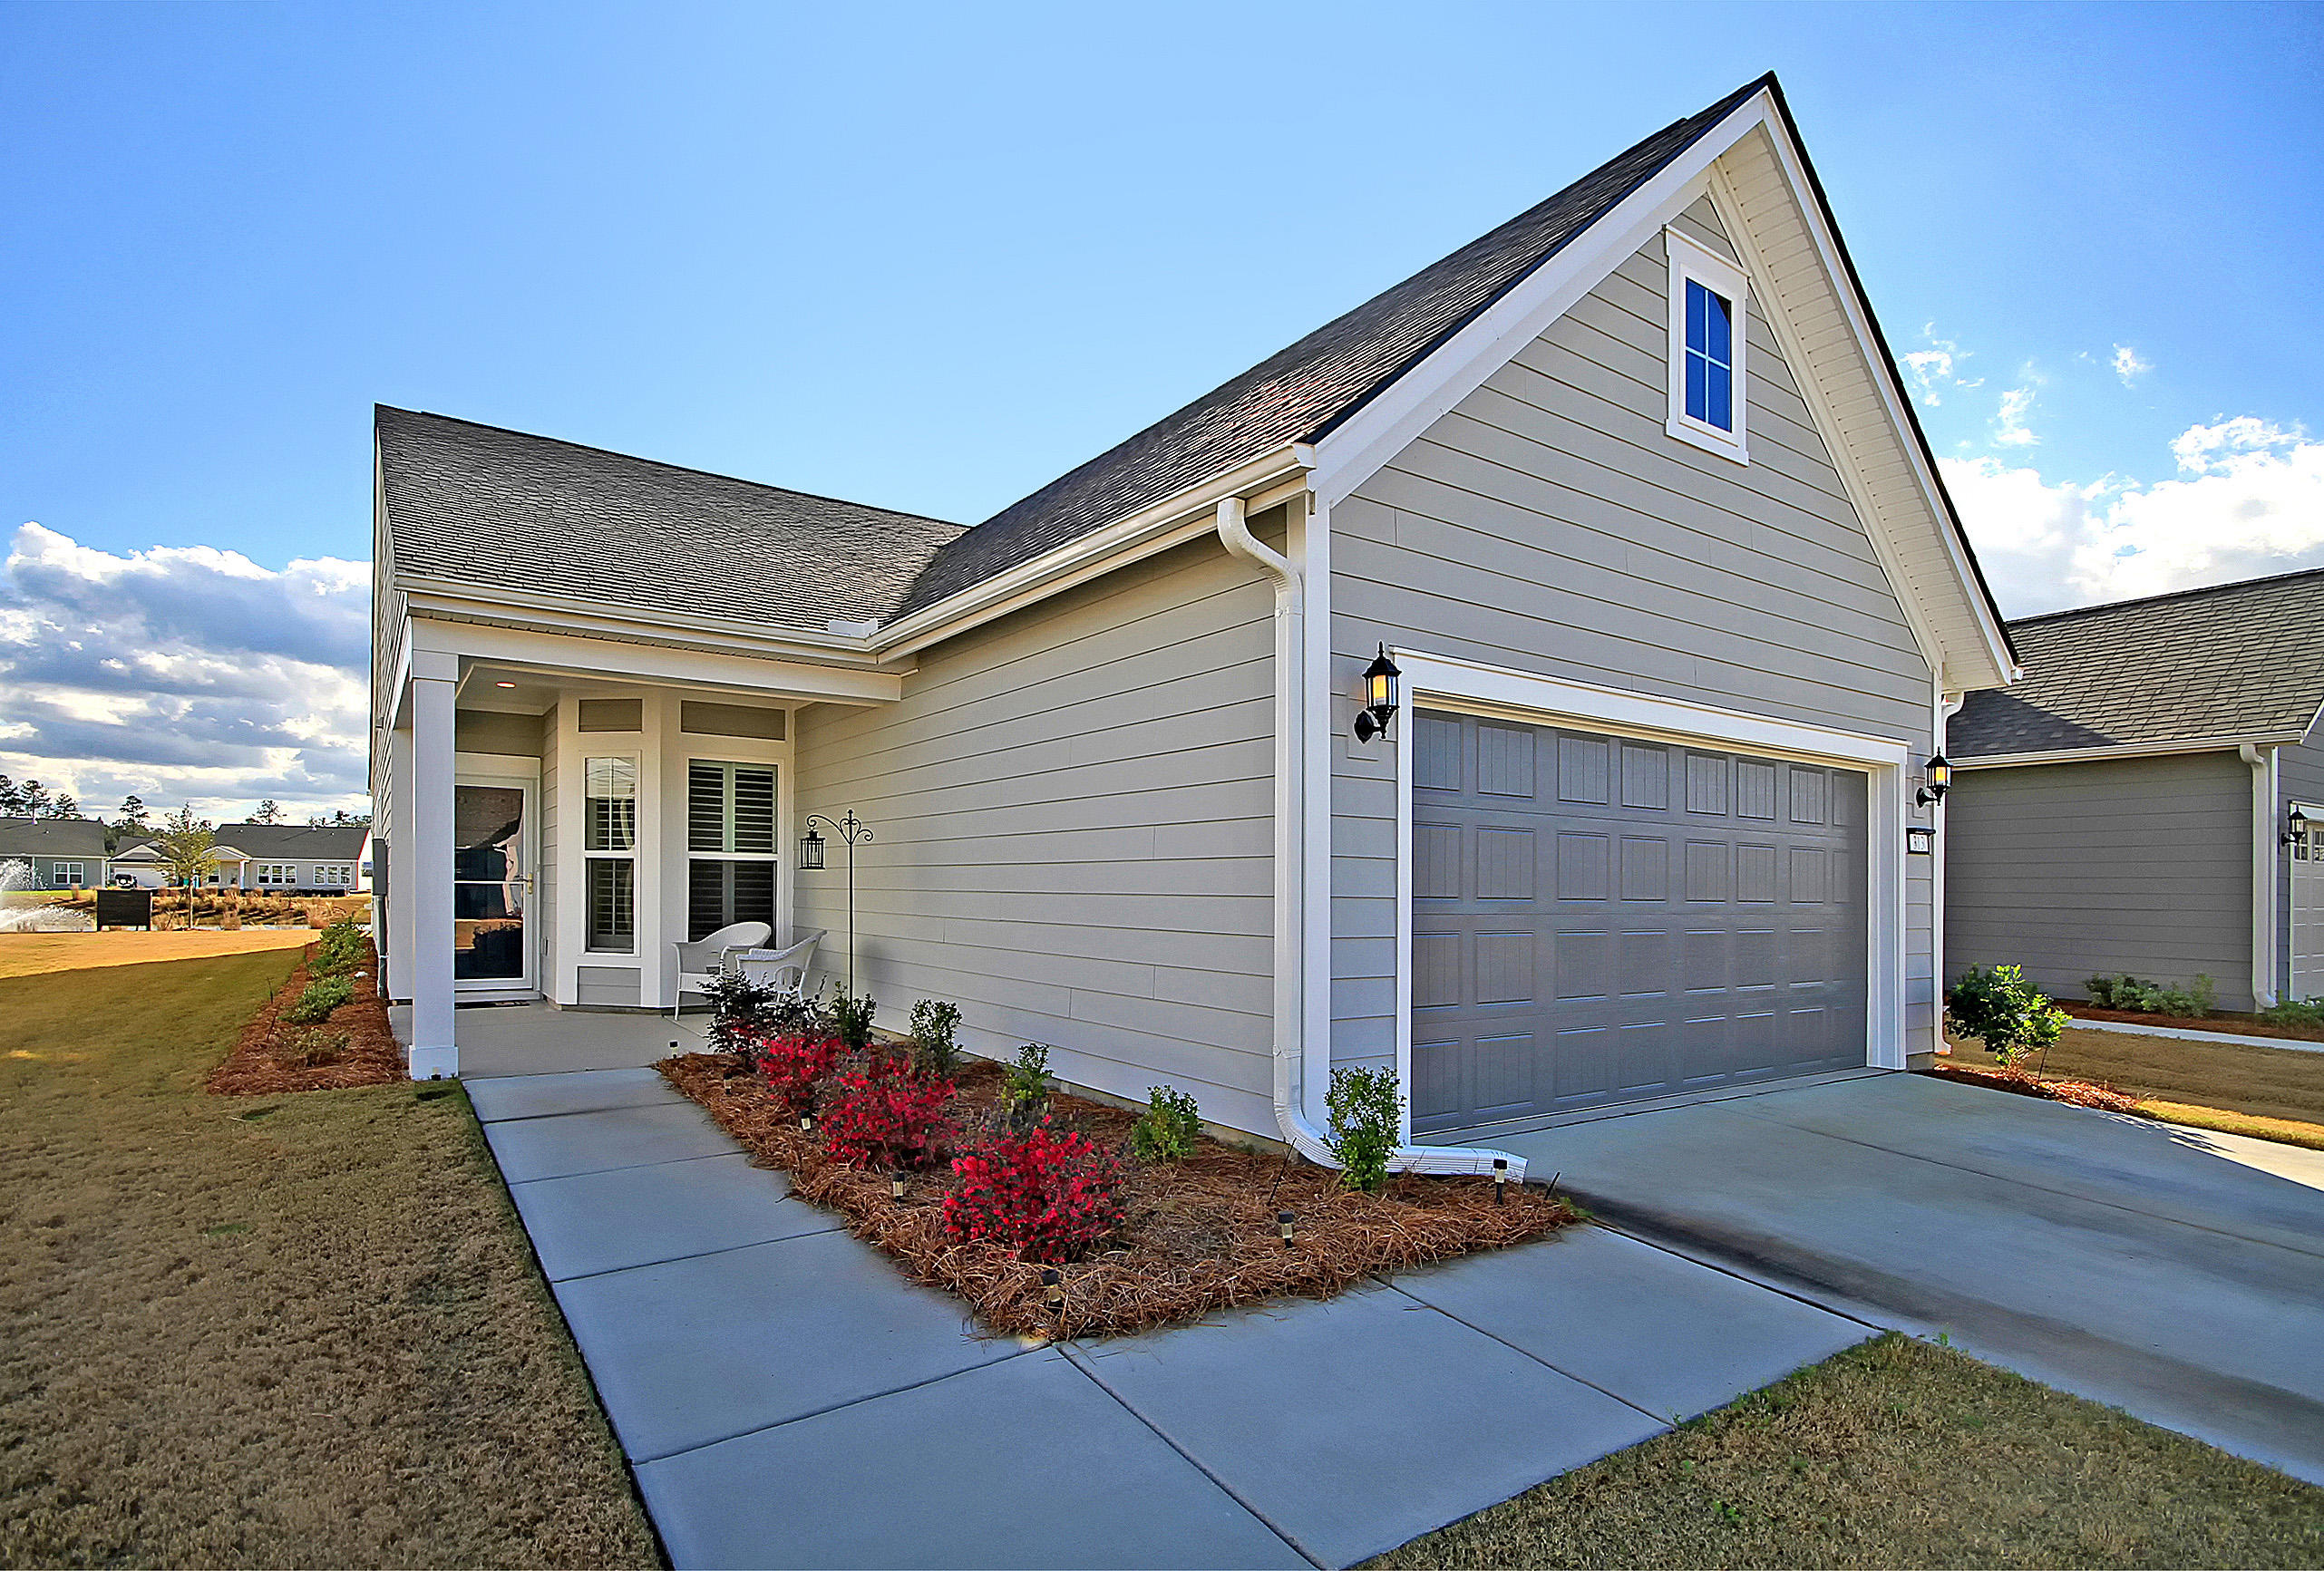 313 Bloomington Way, Summerville,  29486